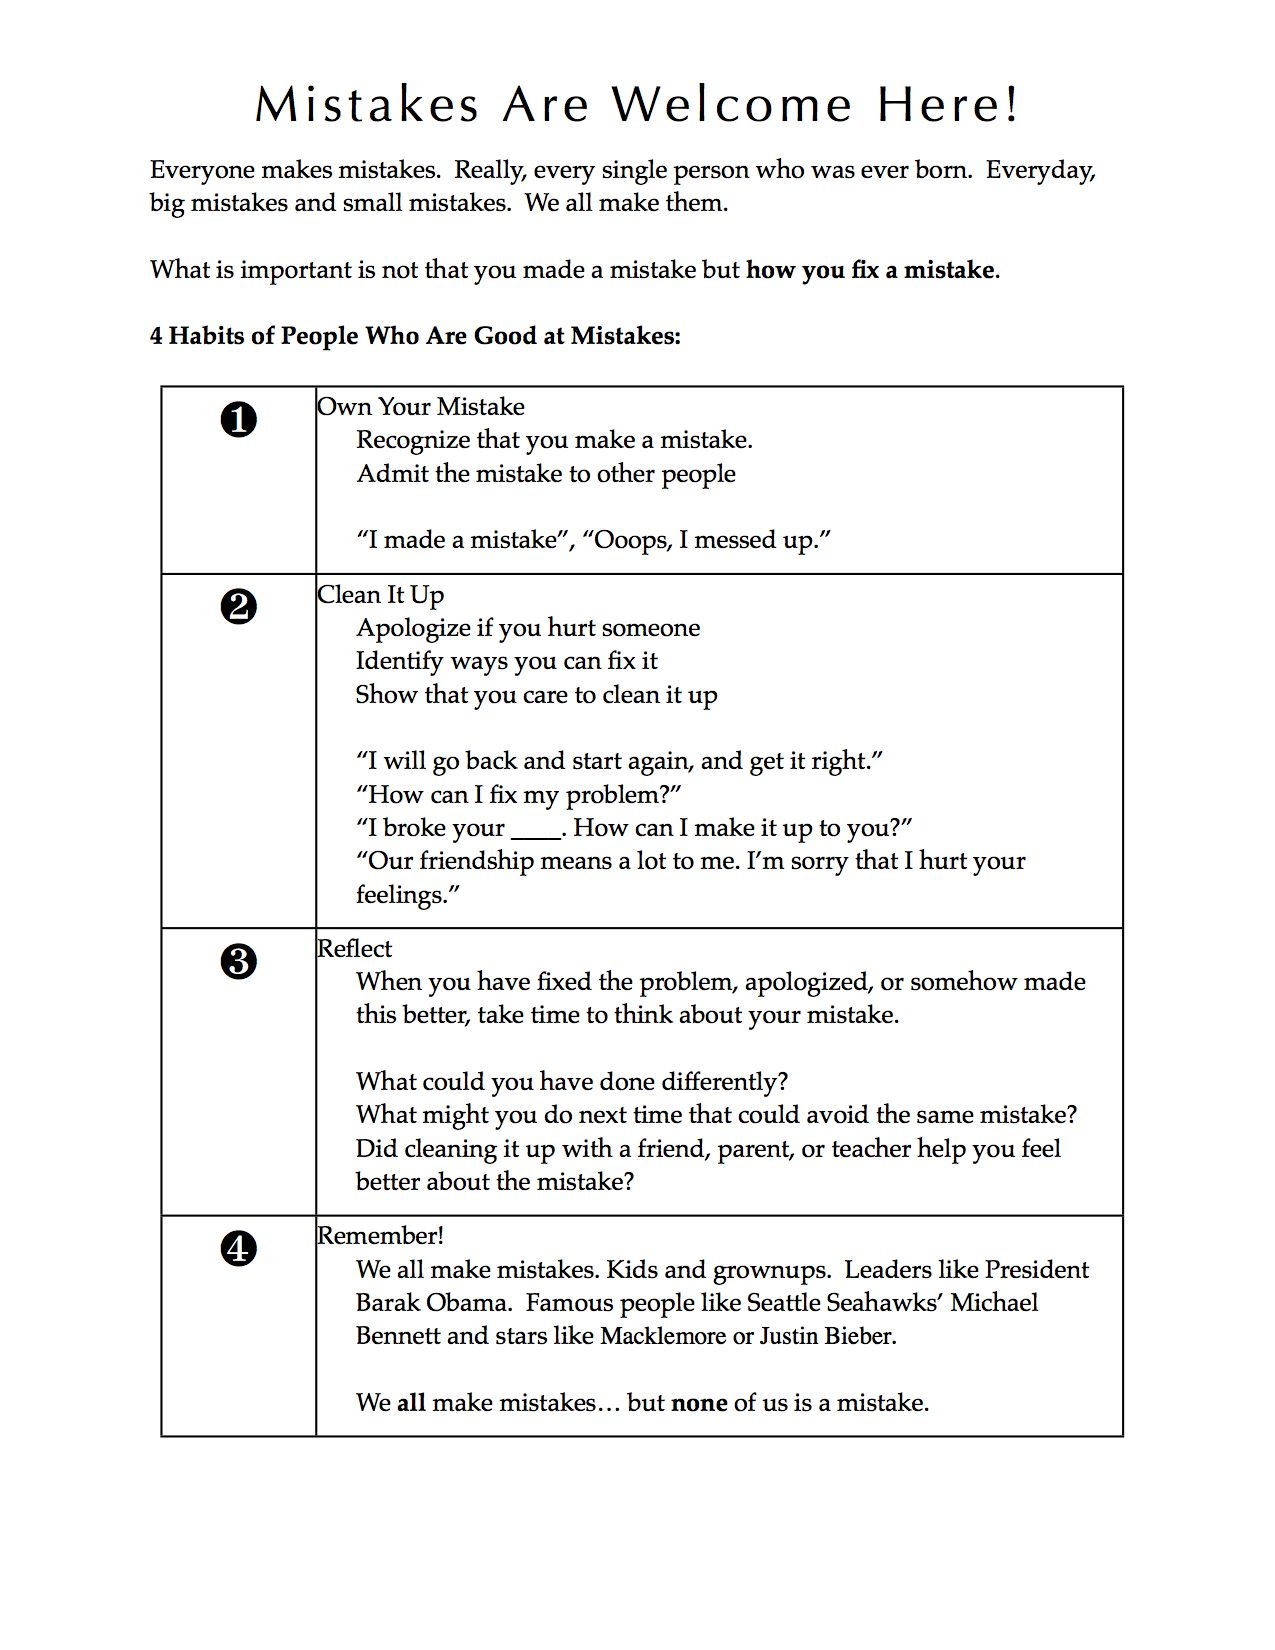 Worksheet To Help Kids See Mistakes As Just A Problem To